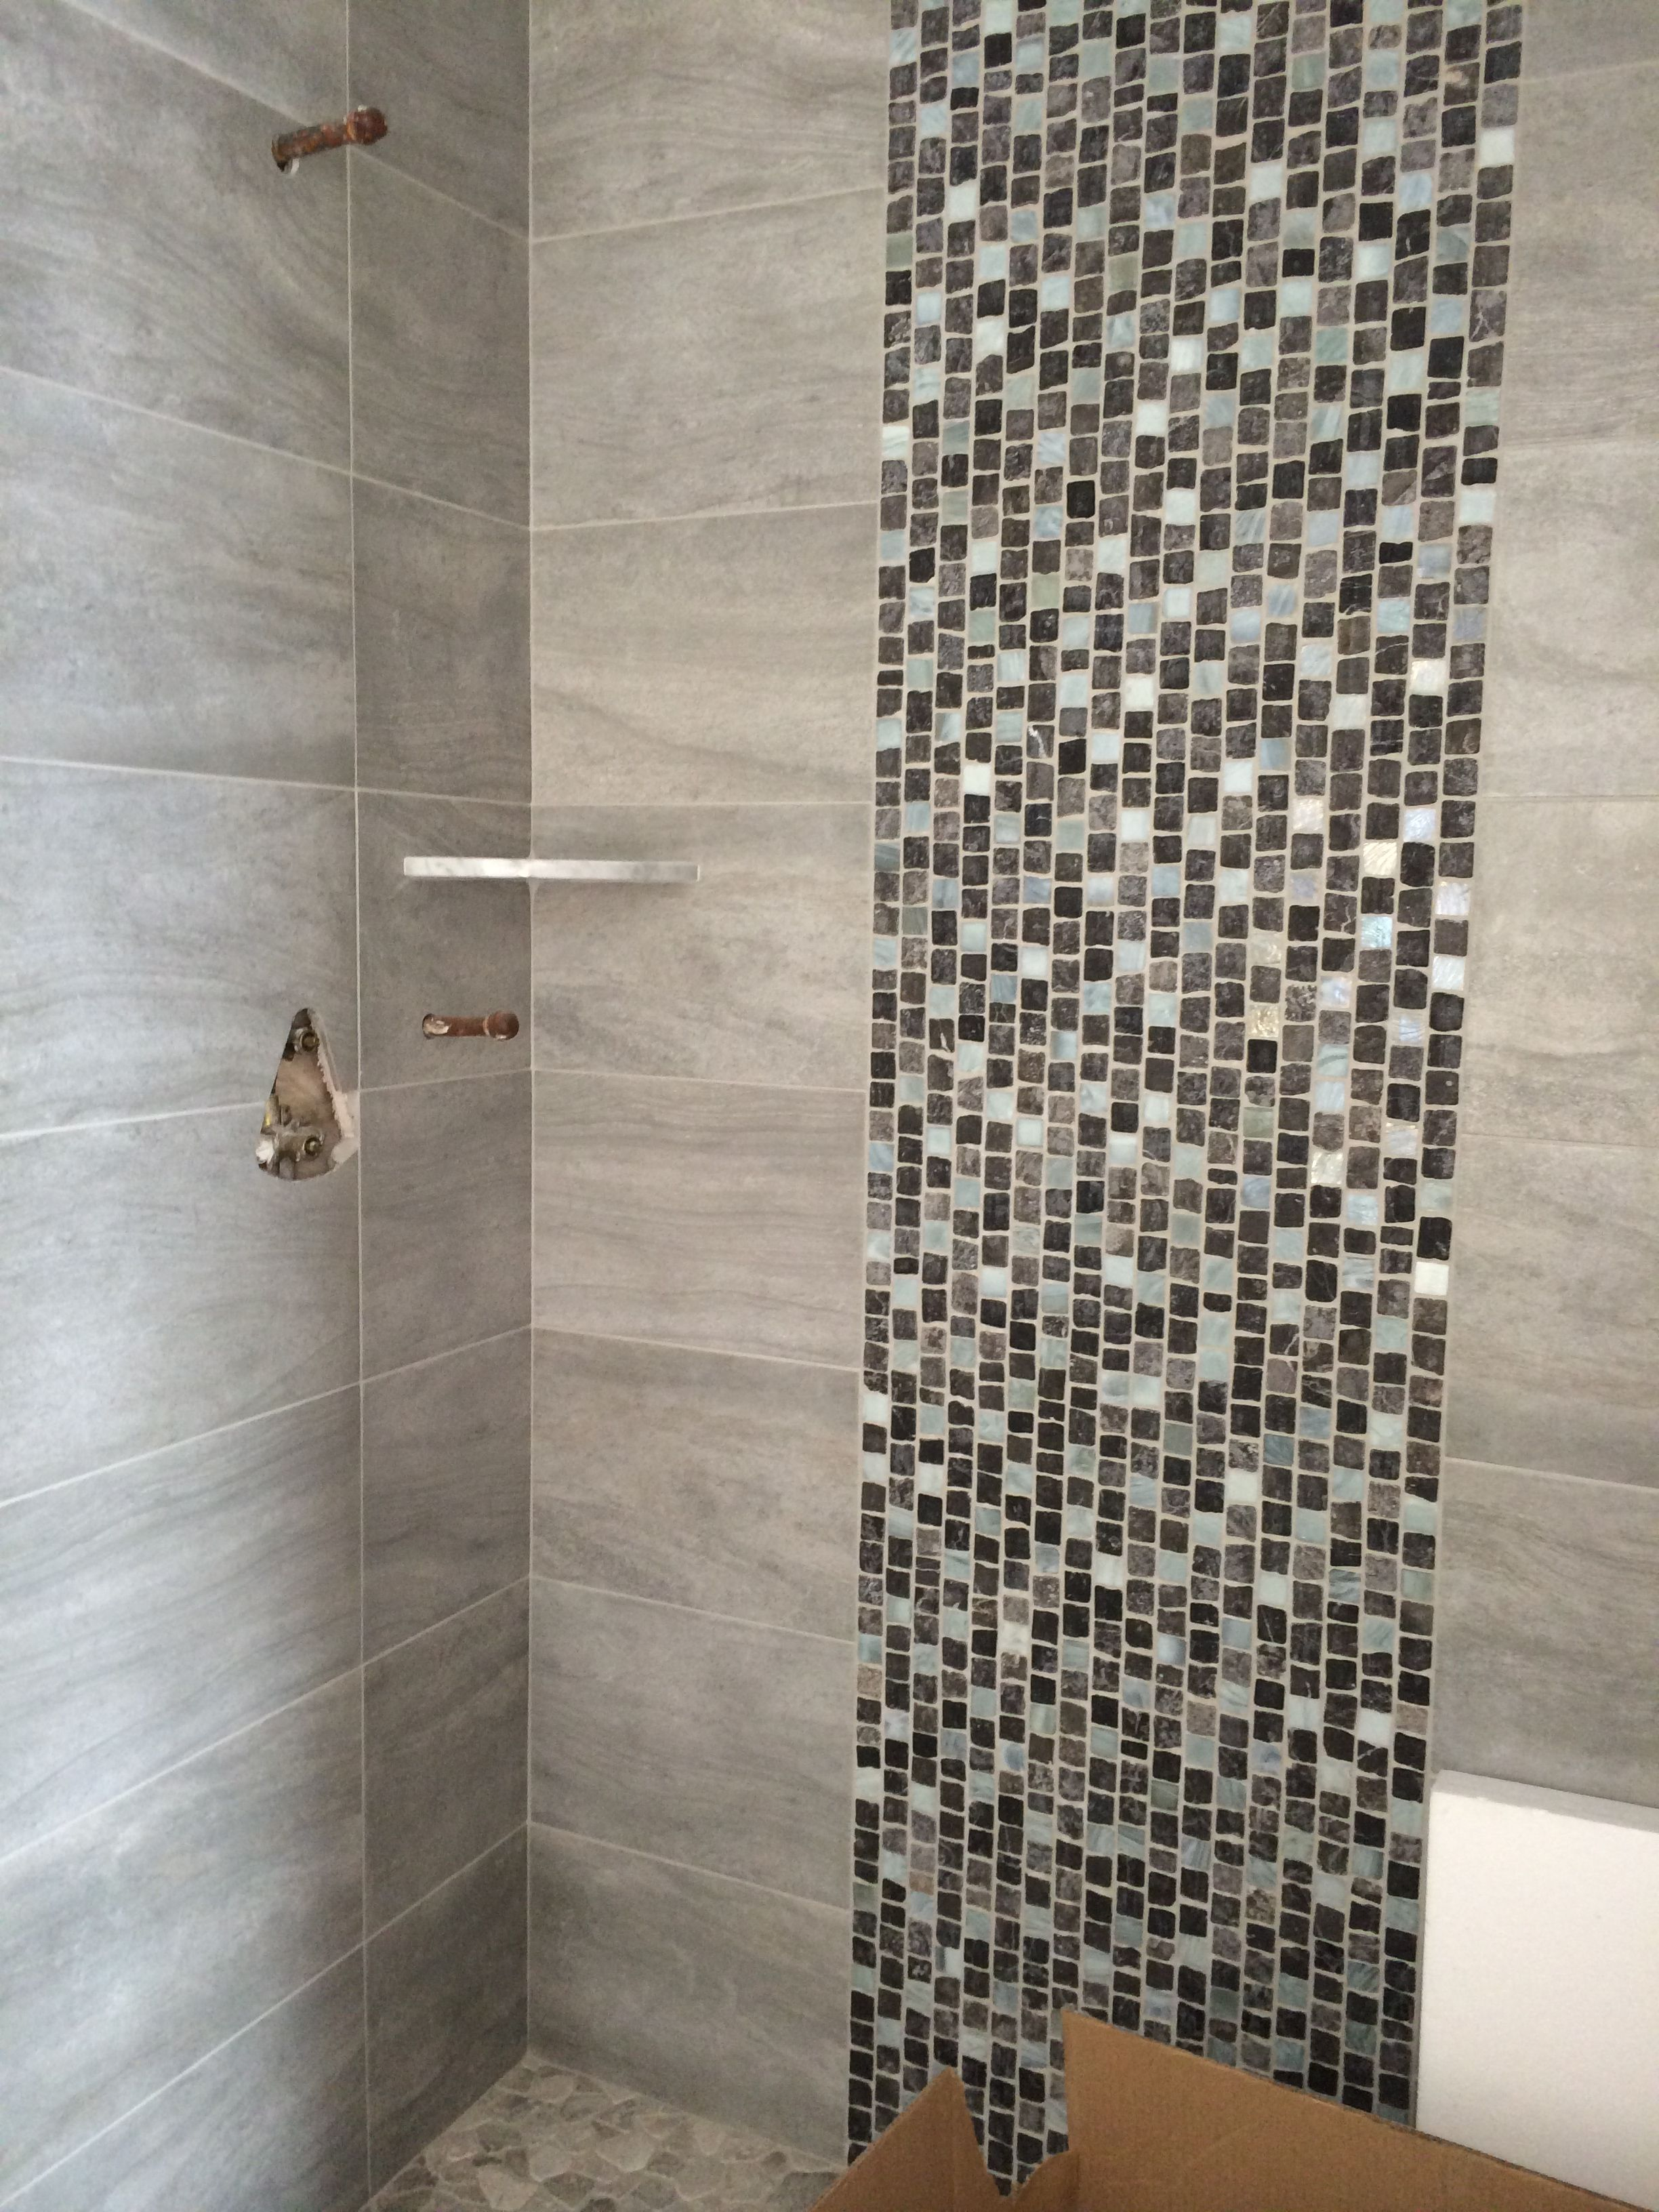 12 x 24 porcelain shower walls w/ stone and glass tile lisello